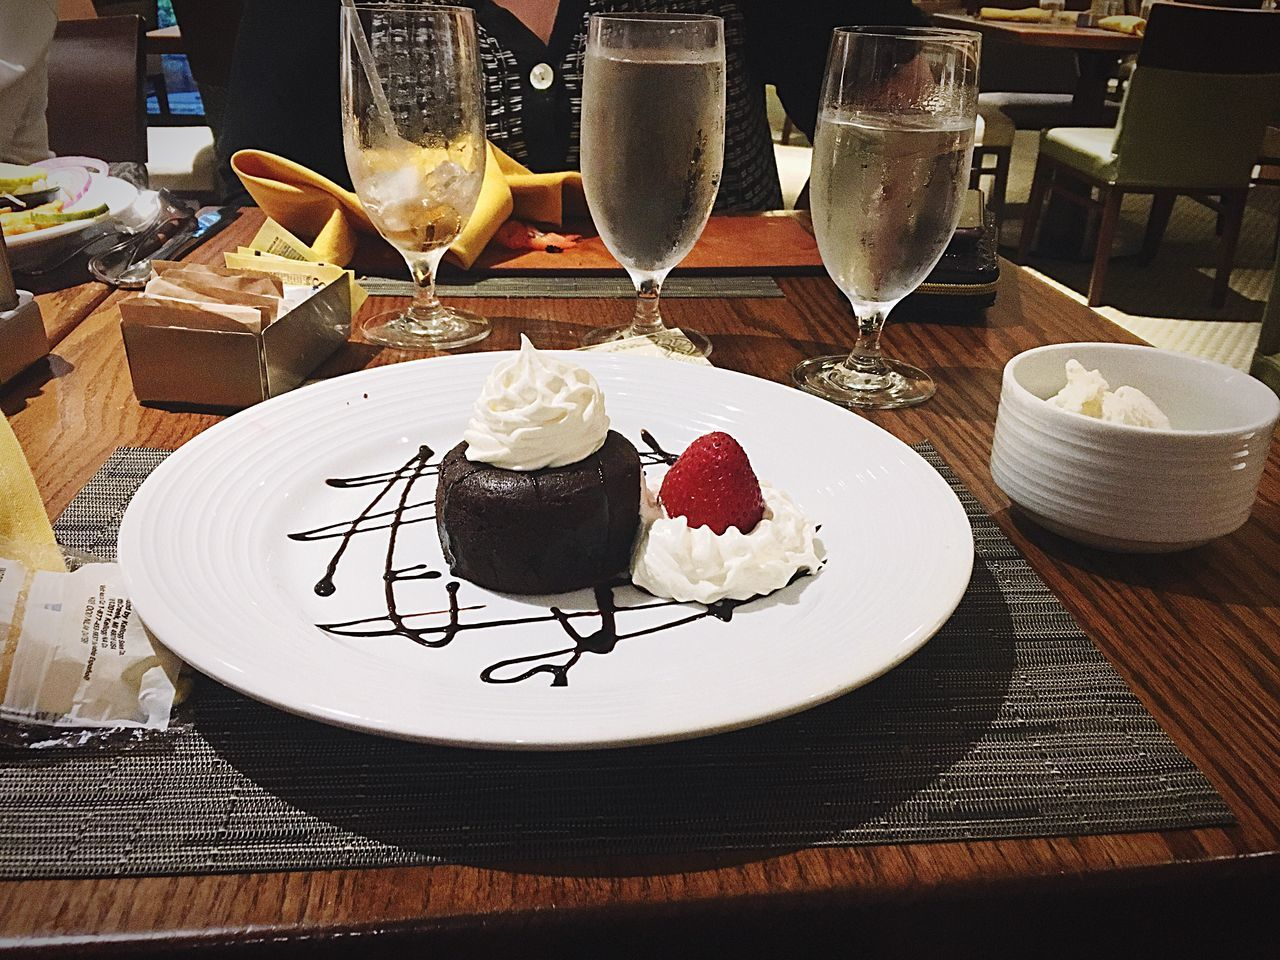 food and drink, indulgence, table, cake, sweet food, food, freshness, indoors, dessert, temptation, ready-to-eat, plate, unhealthy eating, serving size, no people, close-up, day